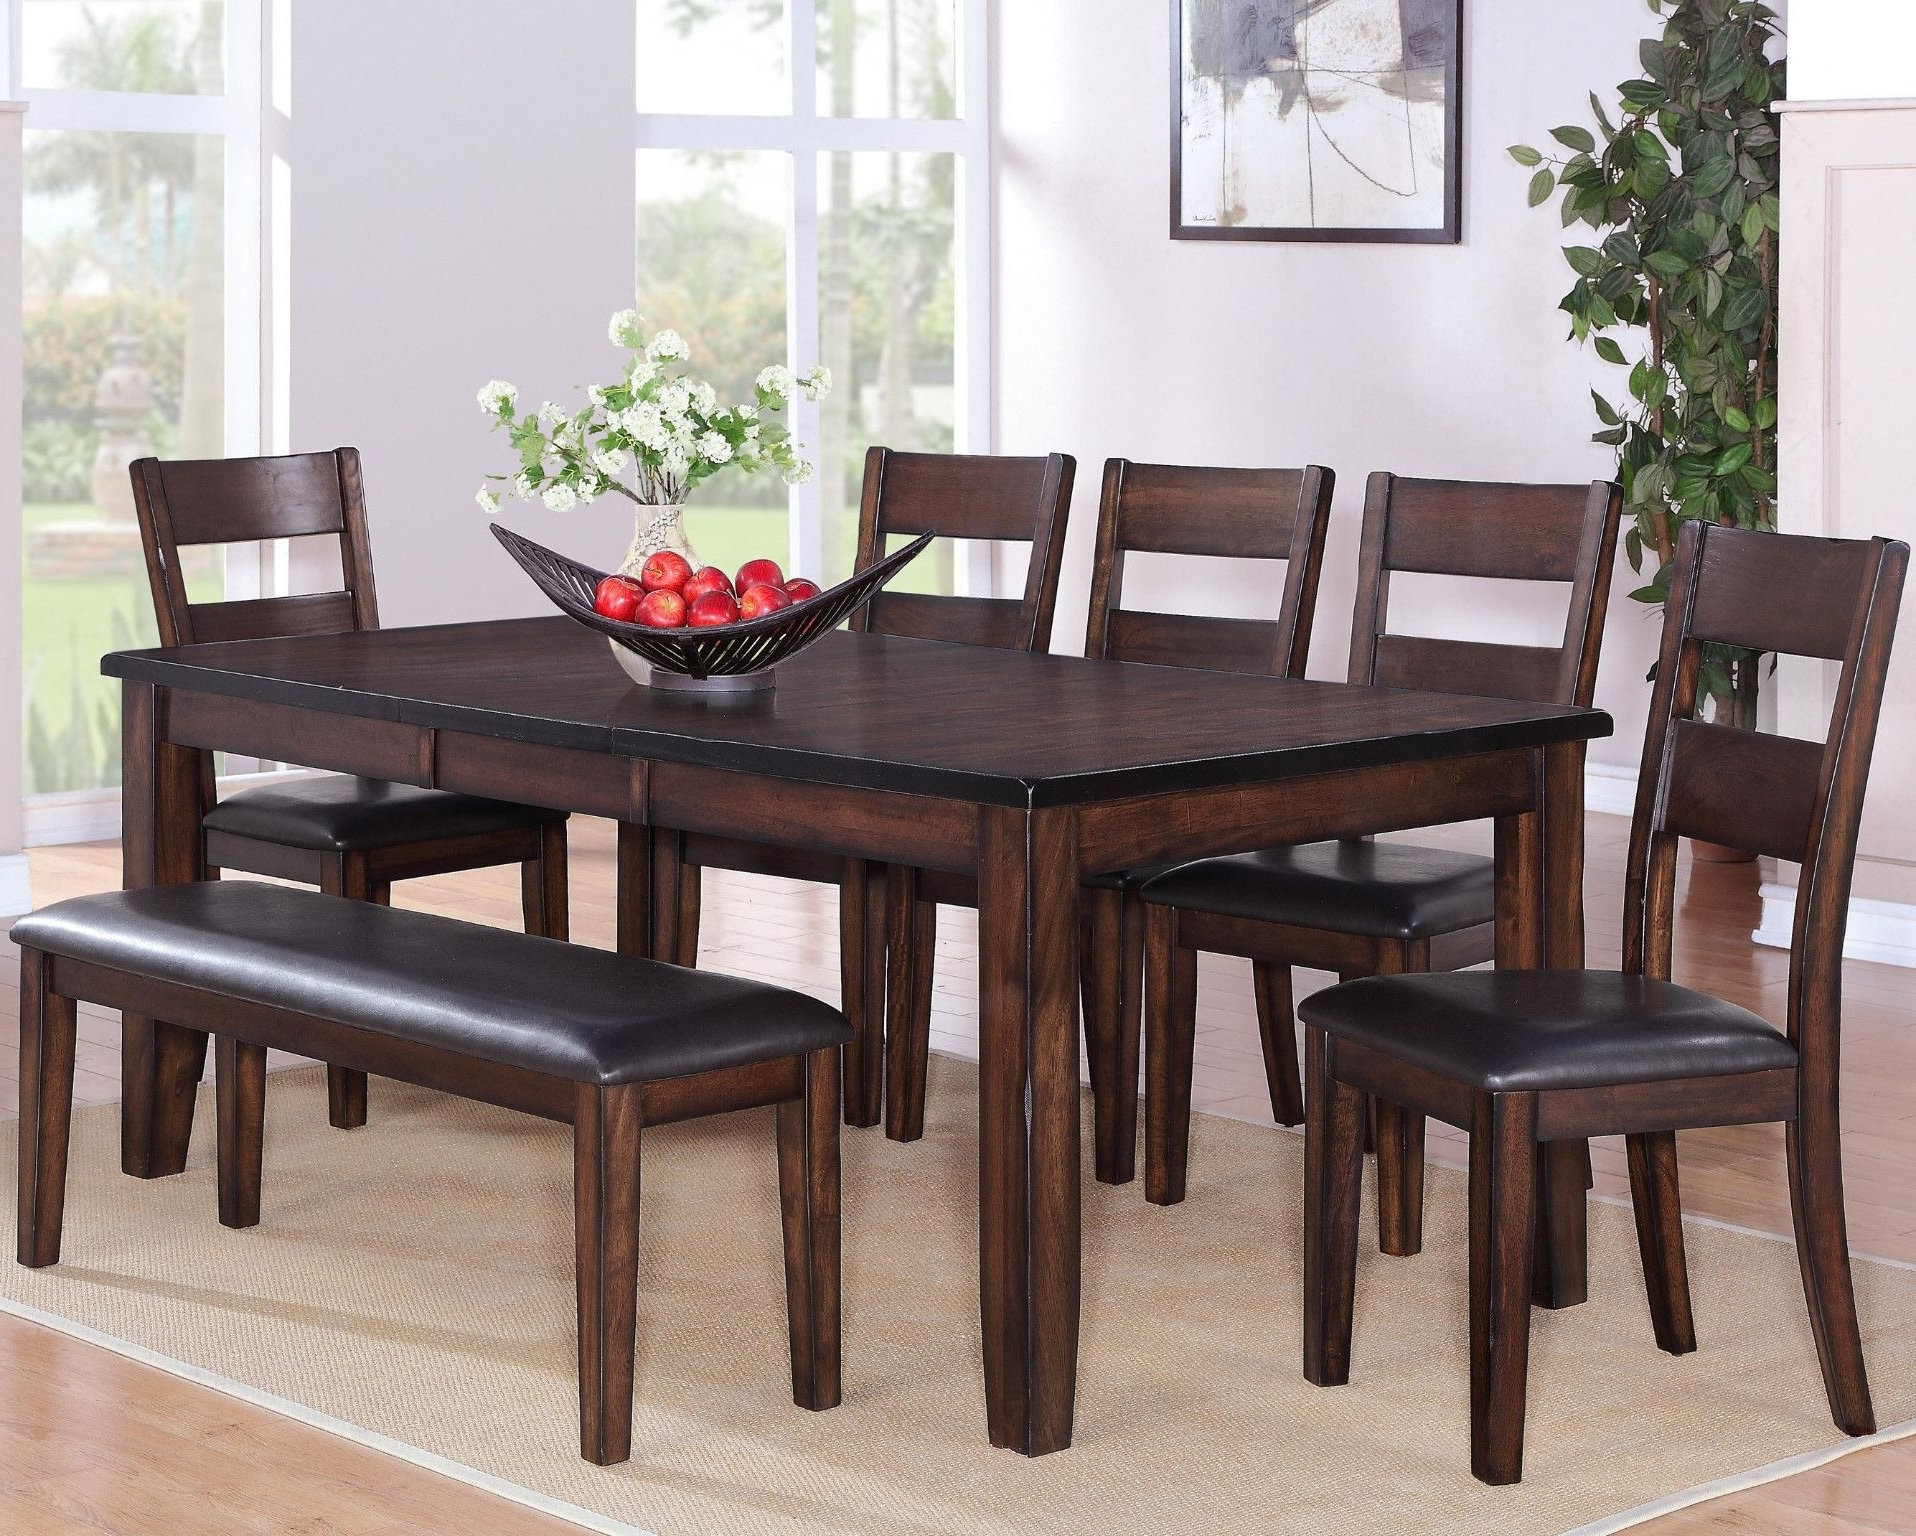 Maldives 5 Piece Dinette Table And 4 Chairs $699.00 Table $ (View 14 of 25)